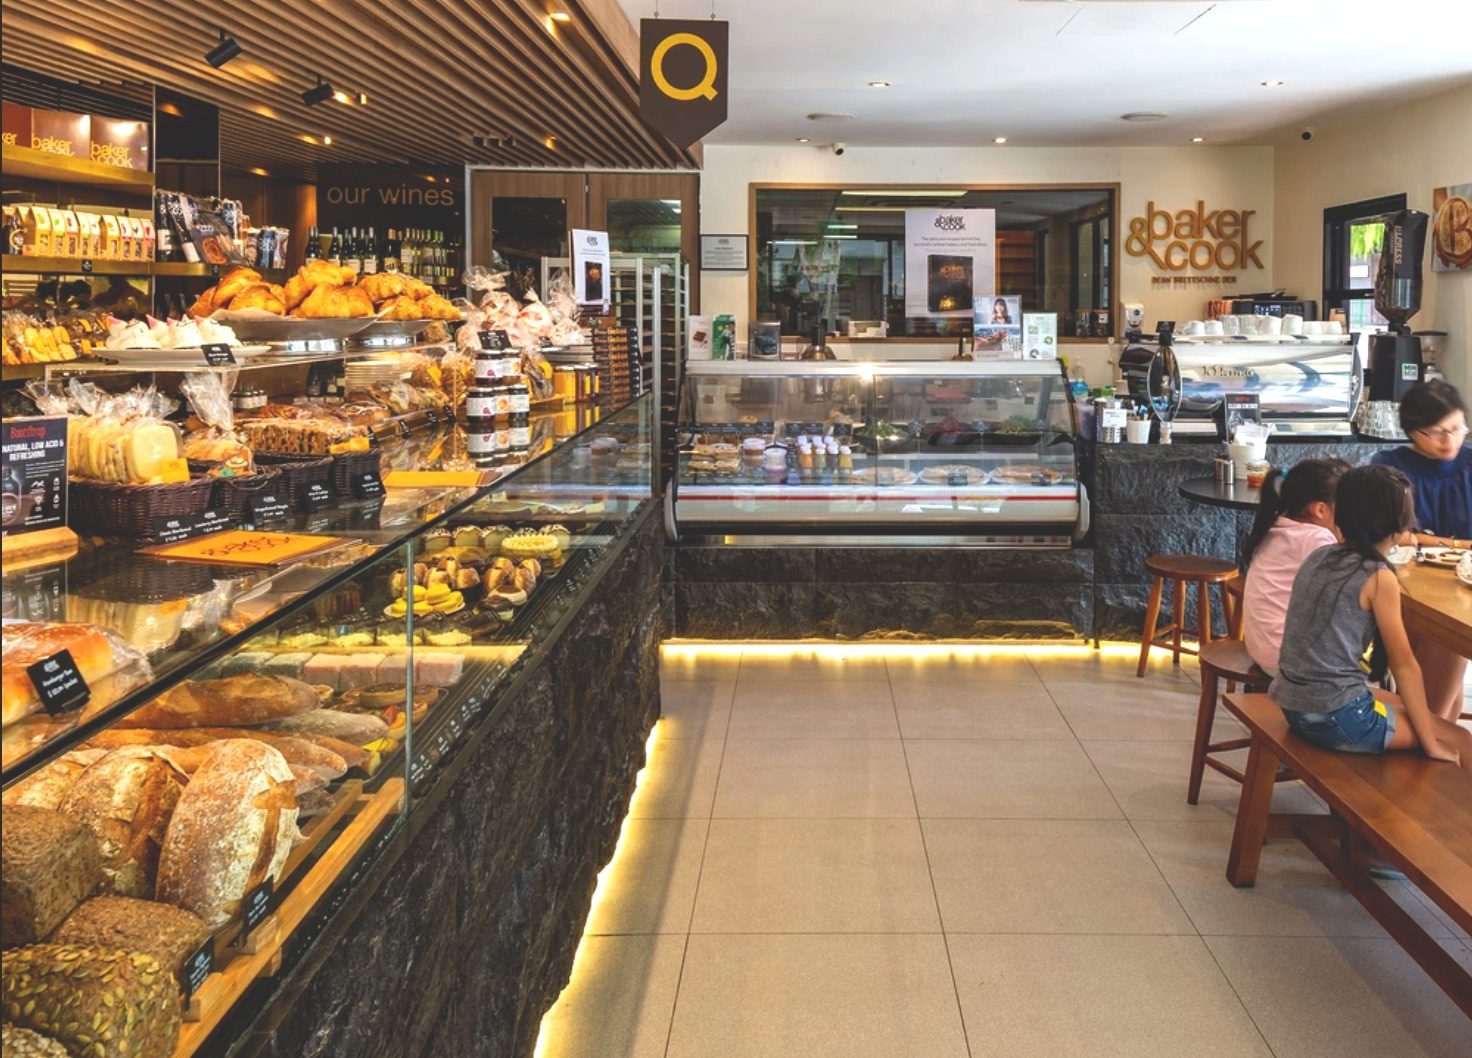 Baker & Cook Bakery in Singapore